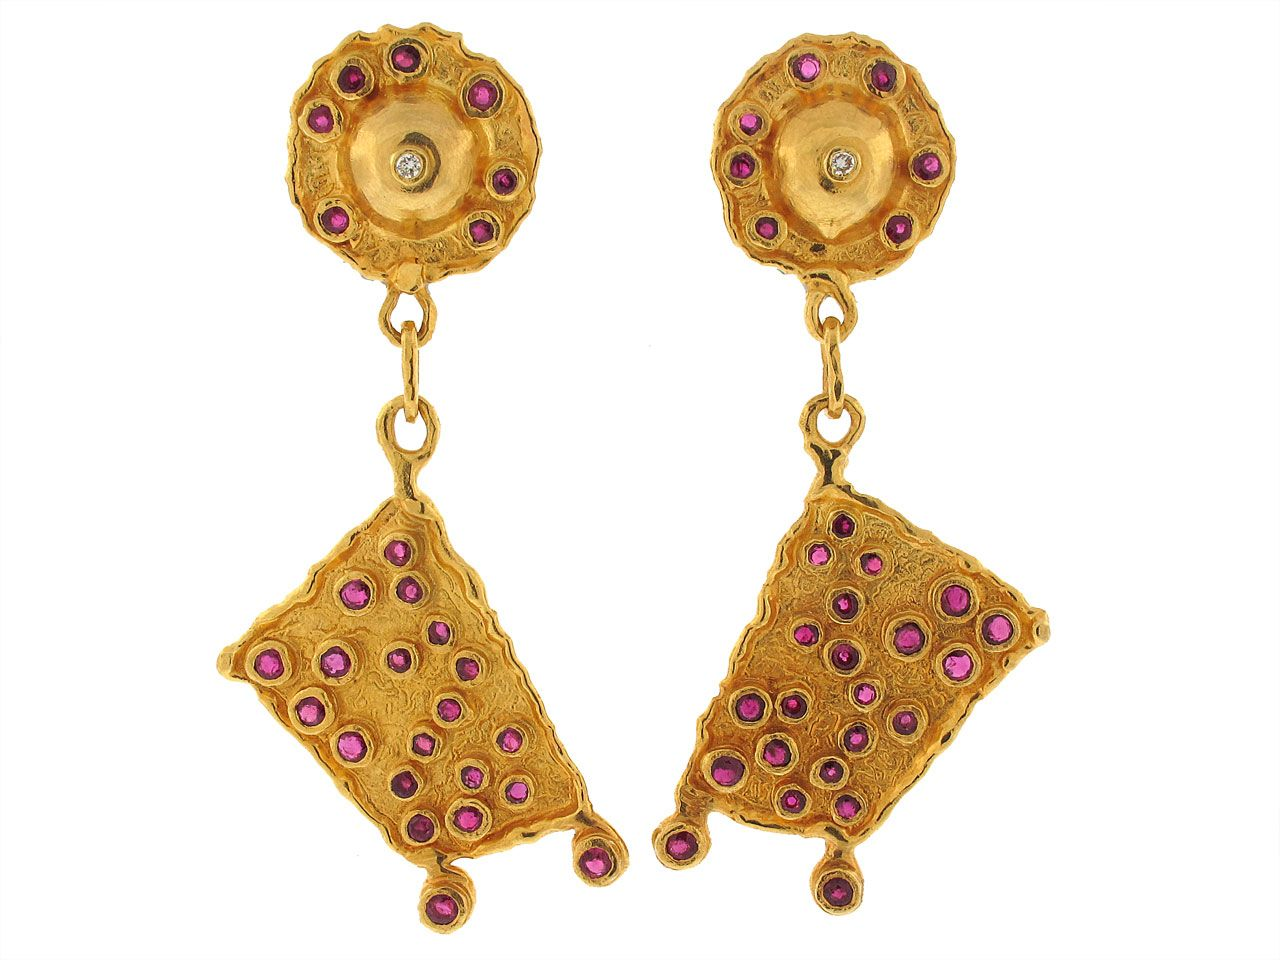 Jean Mahie Ruby Earrings in 22K from Beladora.com Antique and Estate Jewelry